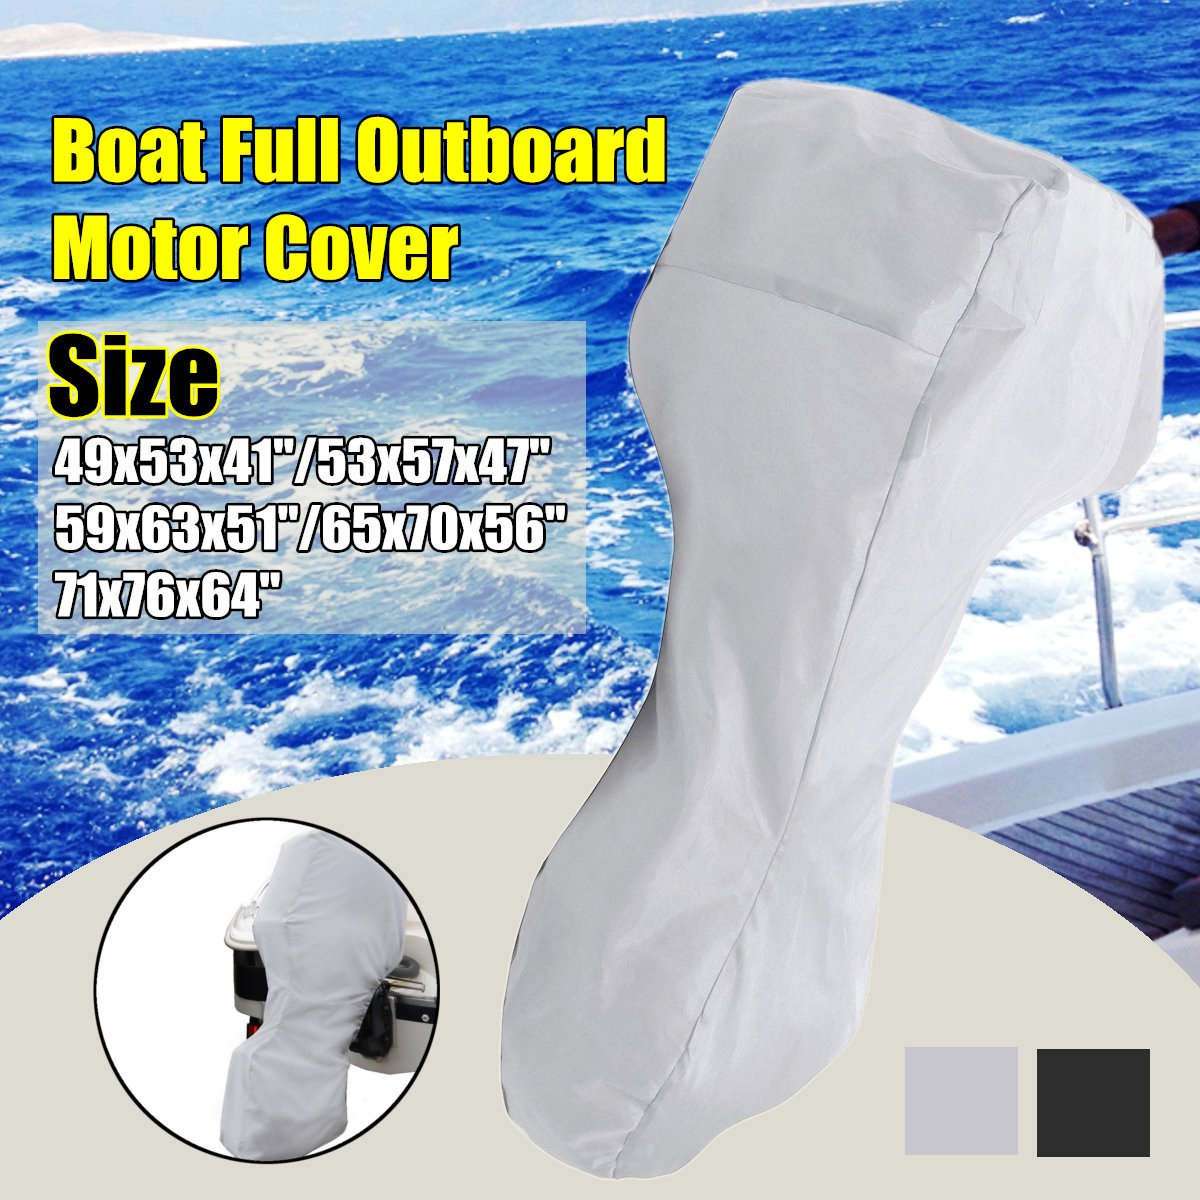 60-90HP Boat Full Motor Cover Outboard Engine Protector For 60-90HP Boat Motors Black/Silver Waterproof Oxford Cloth 5 Sizes